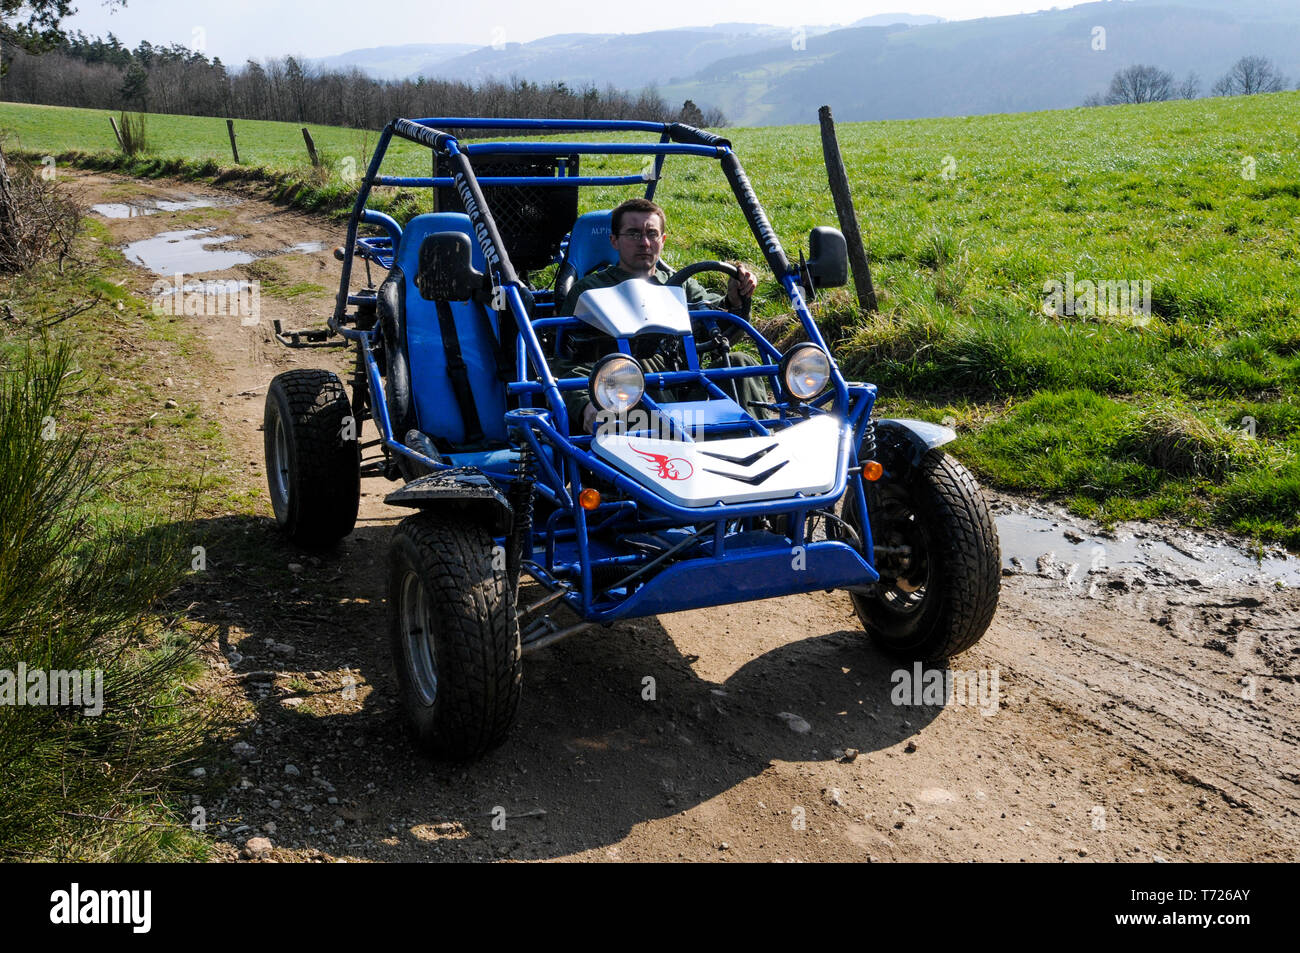 Buggies available for disabled drivers, Loire, France - Stock Image